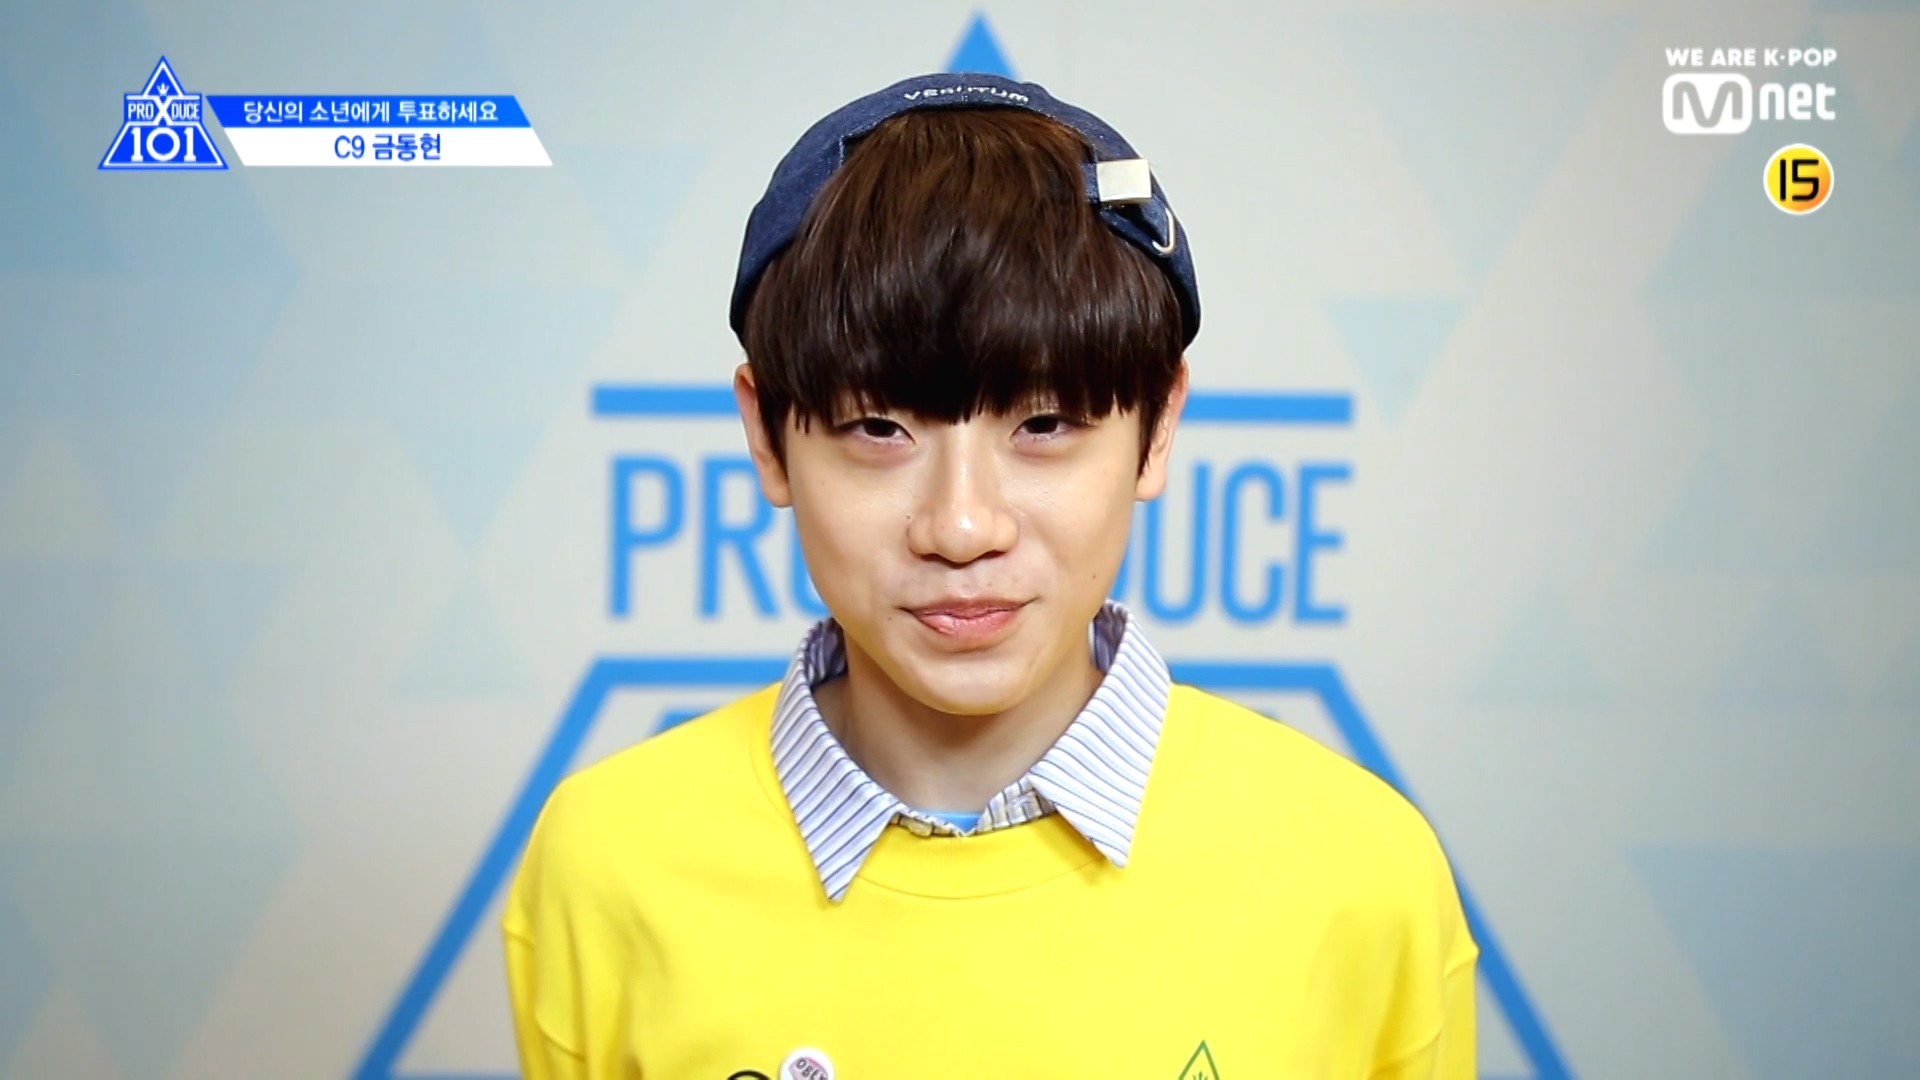 [PRODUCE X 101] EYE CONTACT CHALLENGE l KEUM DONG HYUN(C9)